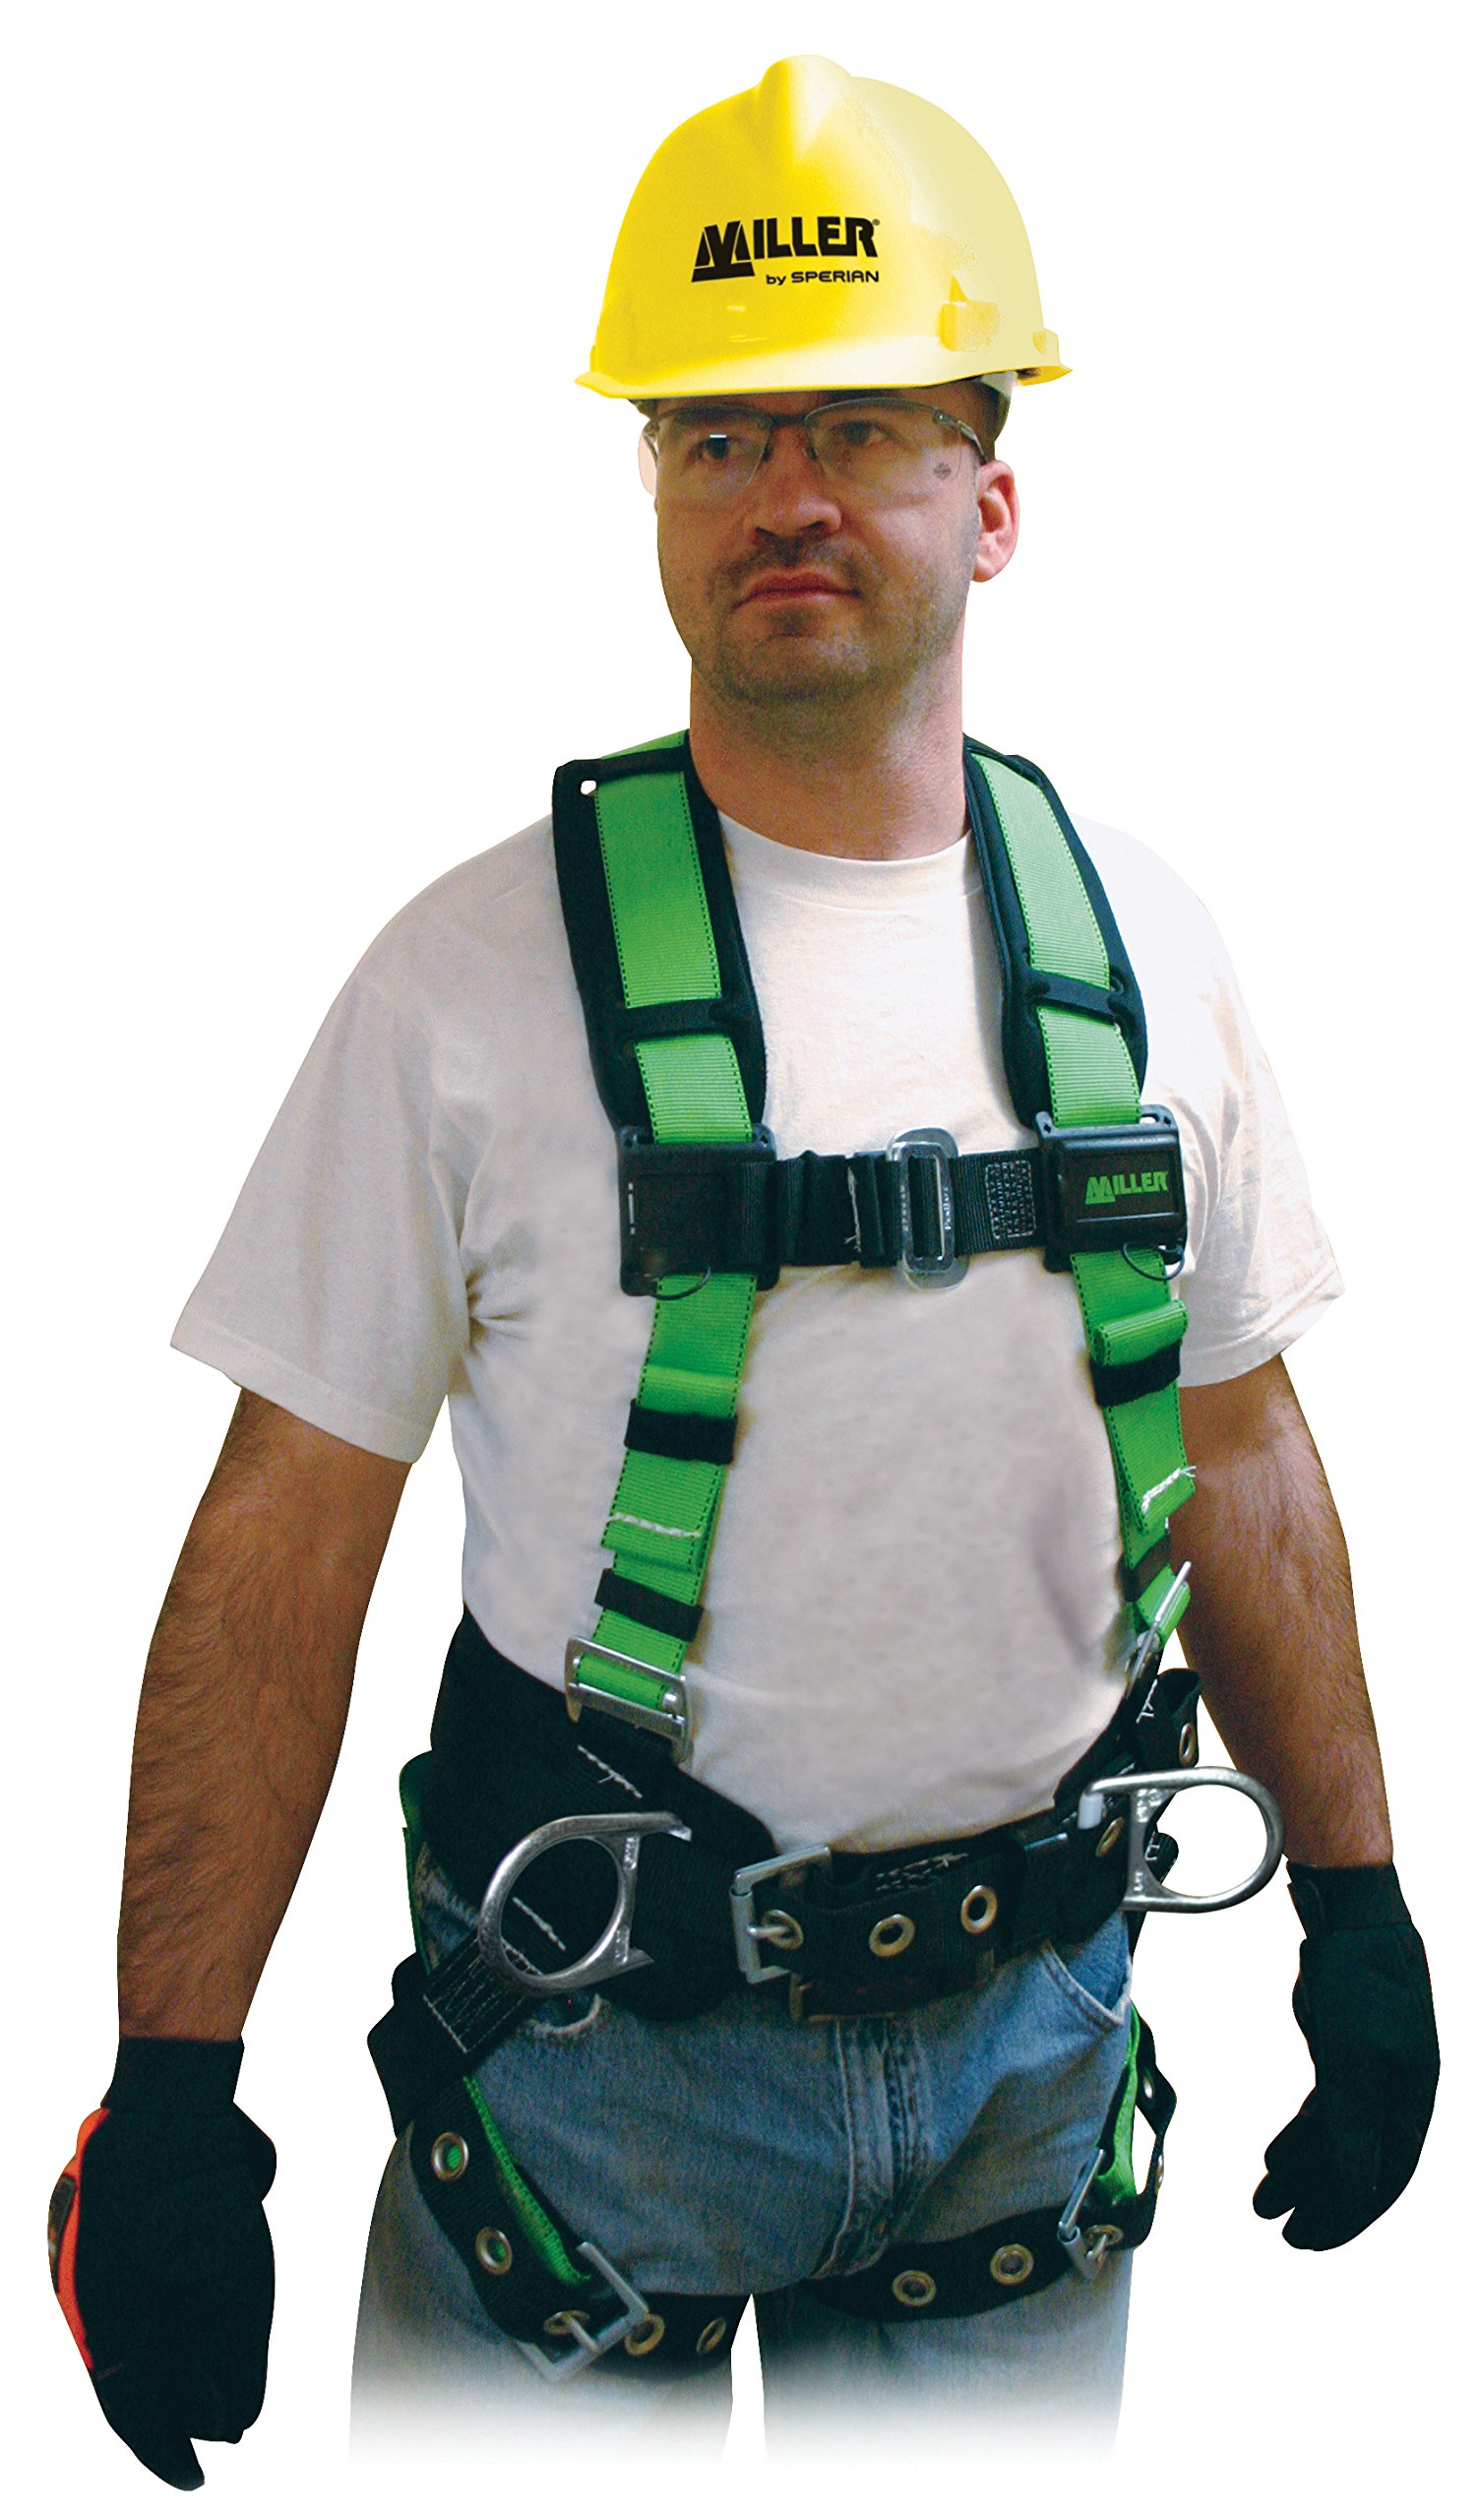 Miller Contractor Non-Stretch Full Body Safety Harness with Side D-Rings, Universal Size-Large/XL, 400 lb. Capacity (650CN-BDP/UGN) by Honeywell